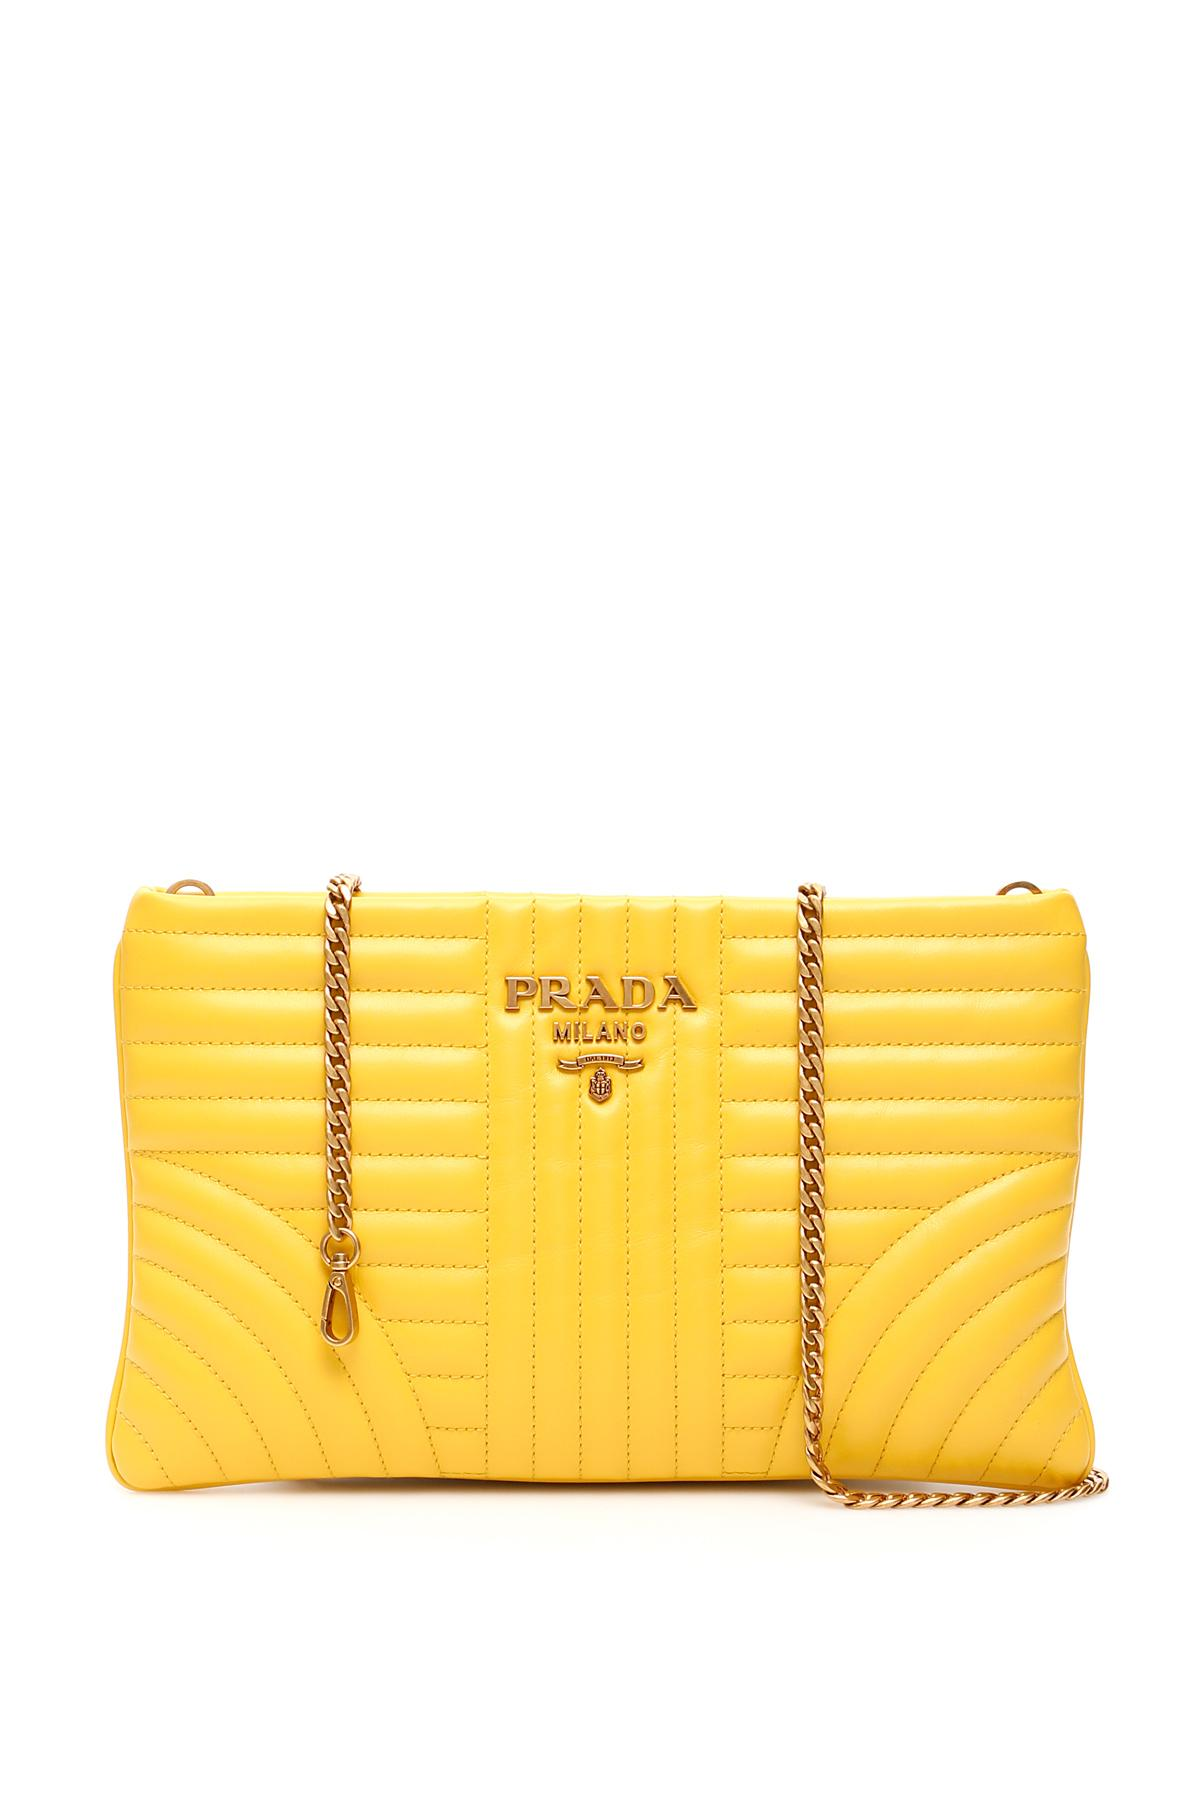 4bd236711ef6d1 Womens Clutch for sale - Clutch Wallet online brands, prices ...